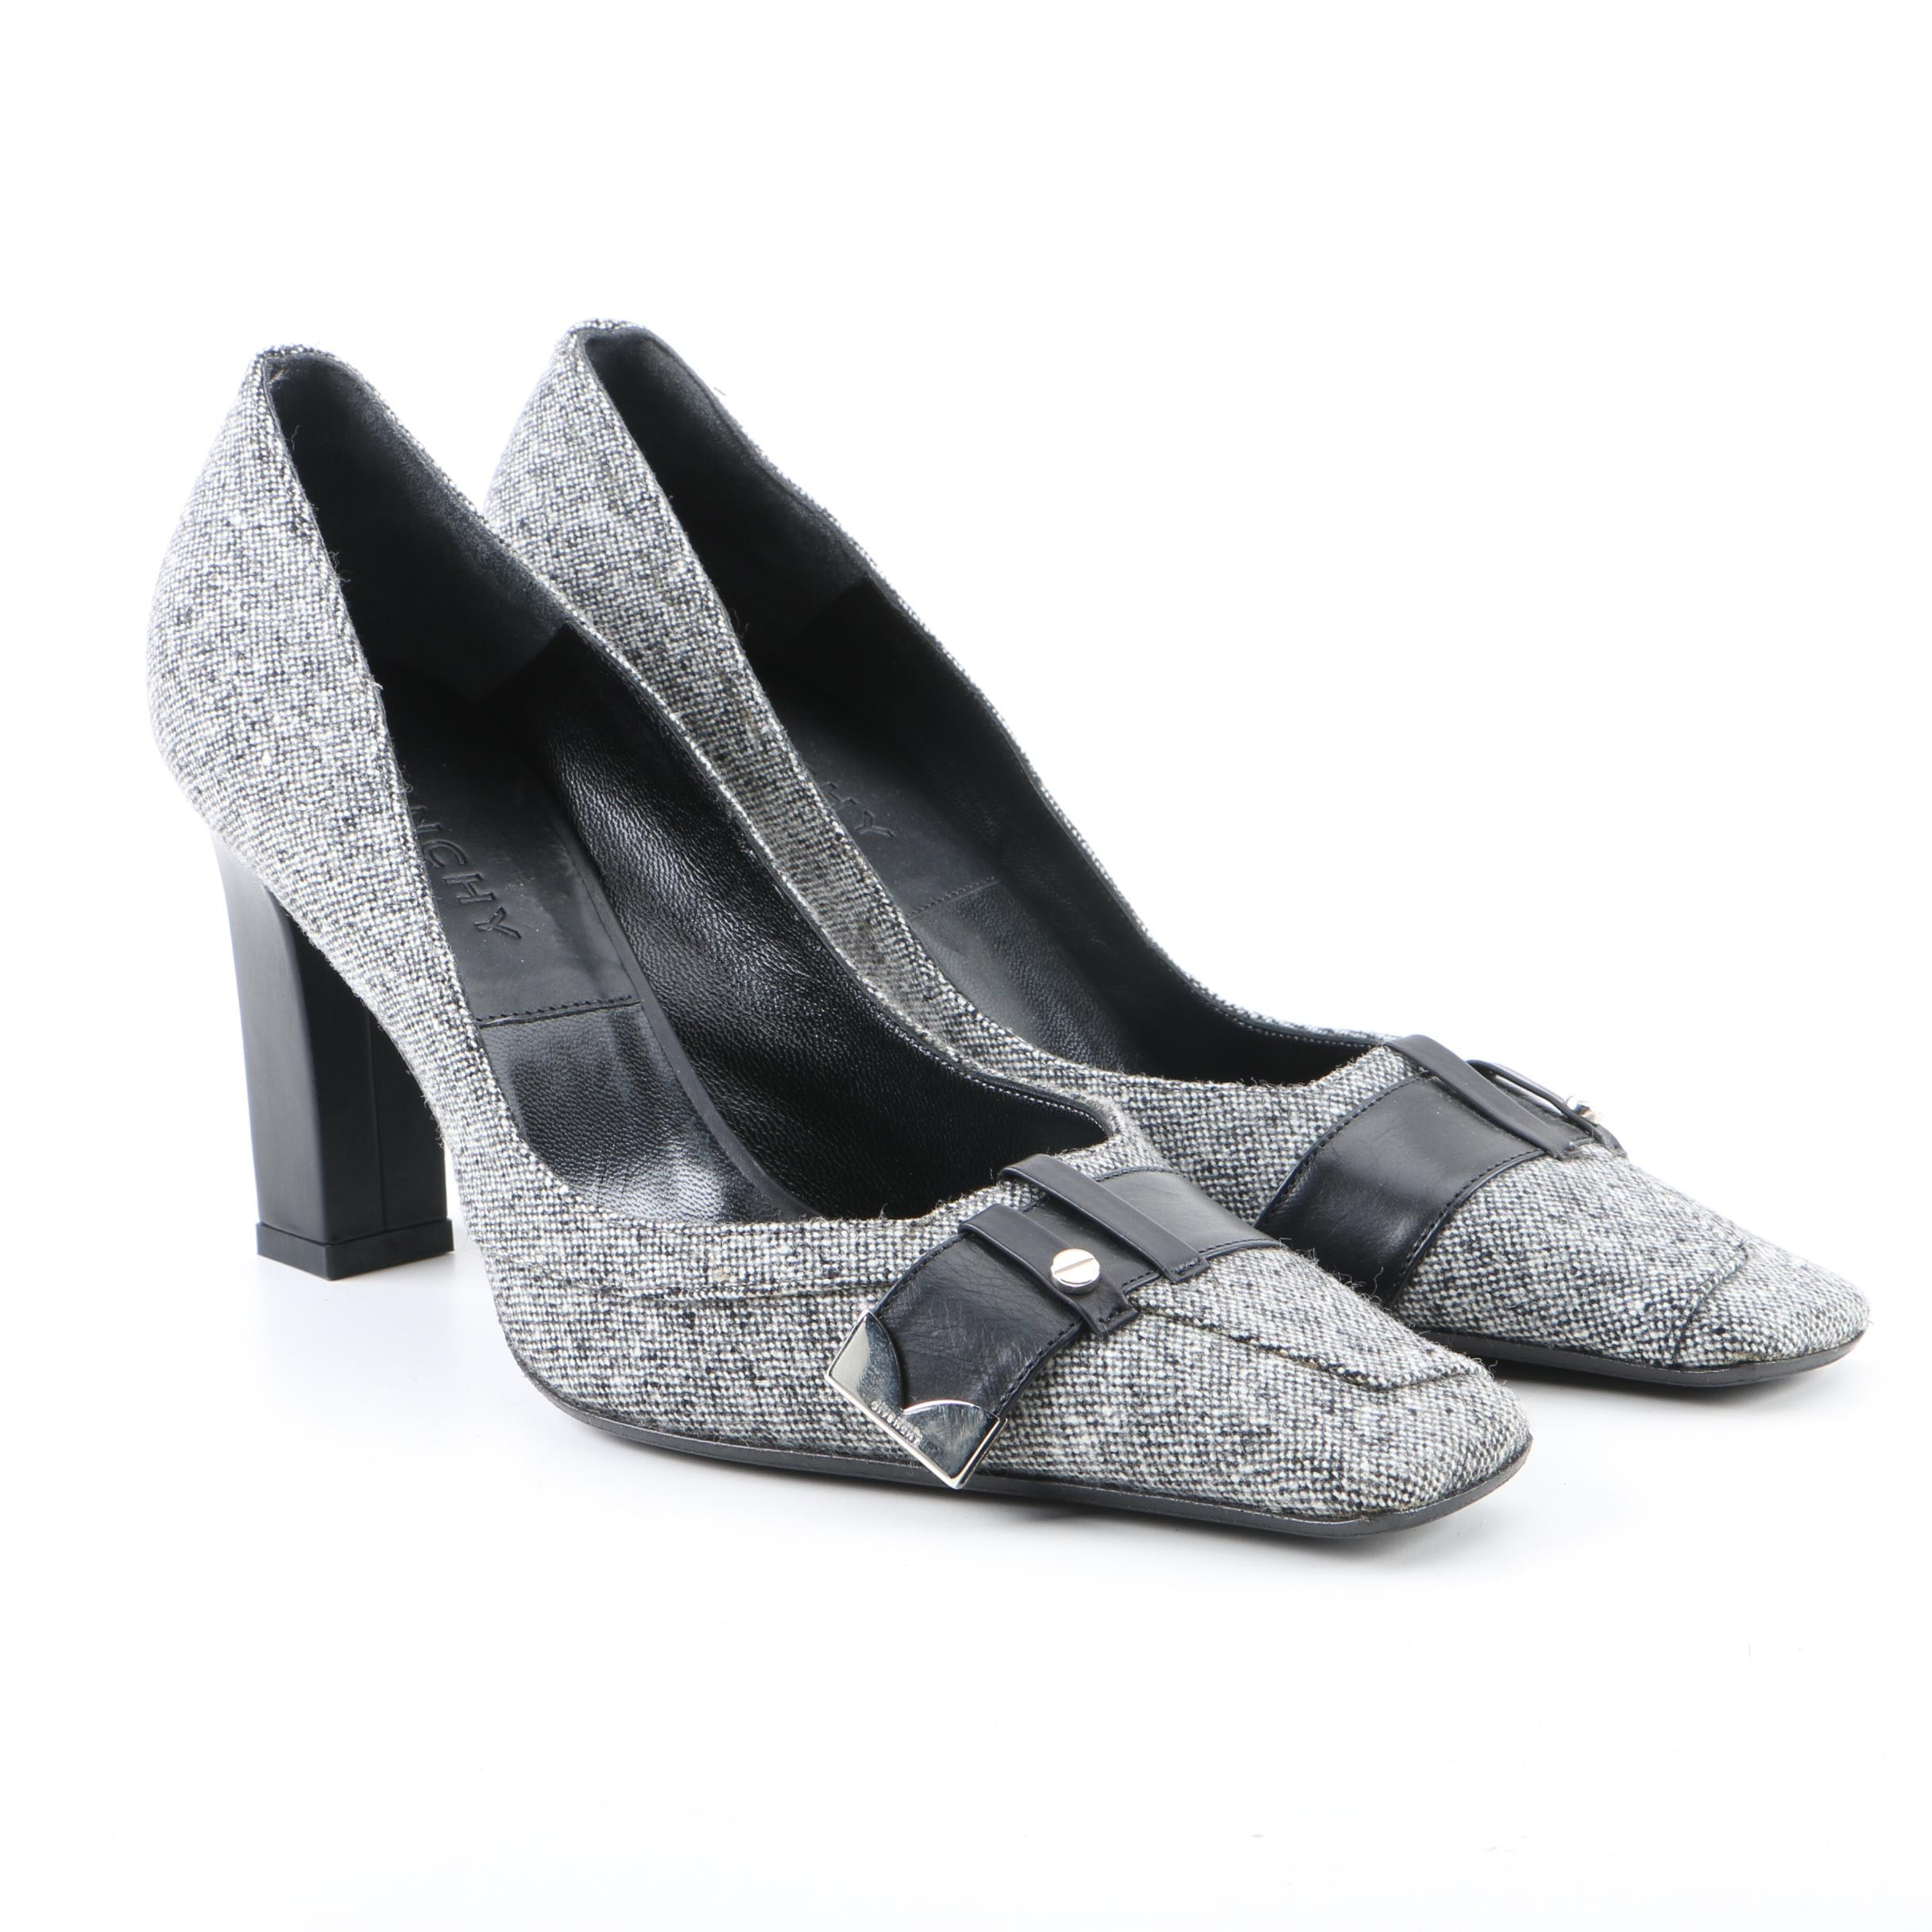 Givenchy Black and Off-White Tweed and Leather High-Heeled Pumps